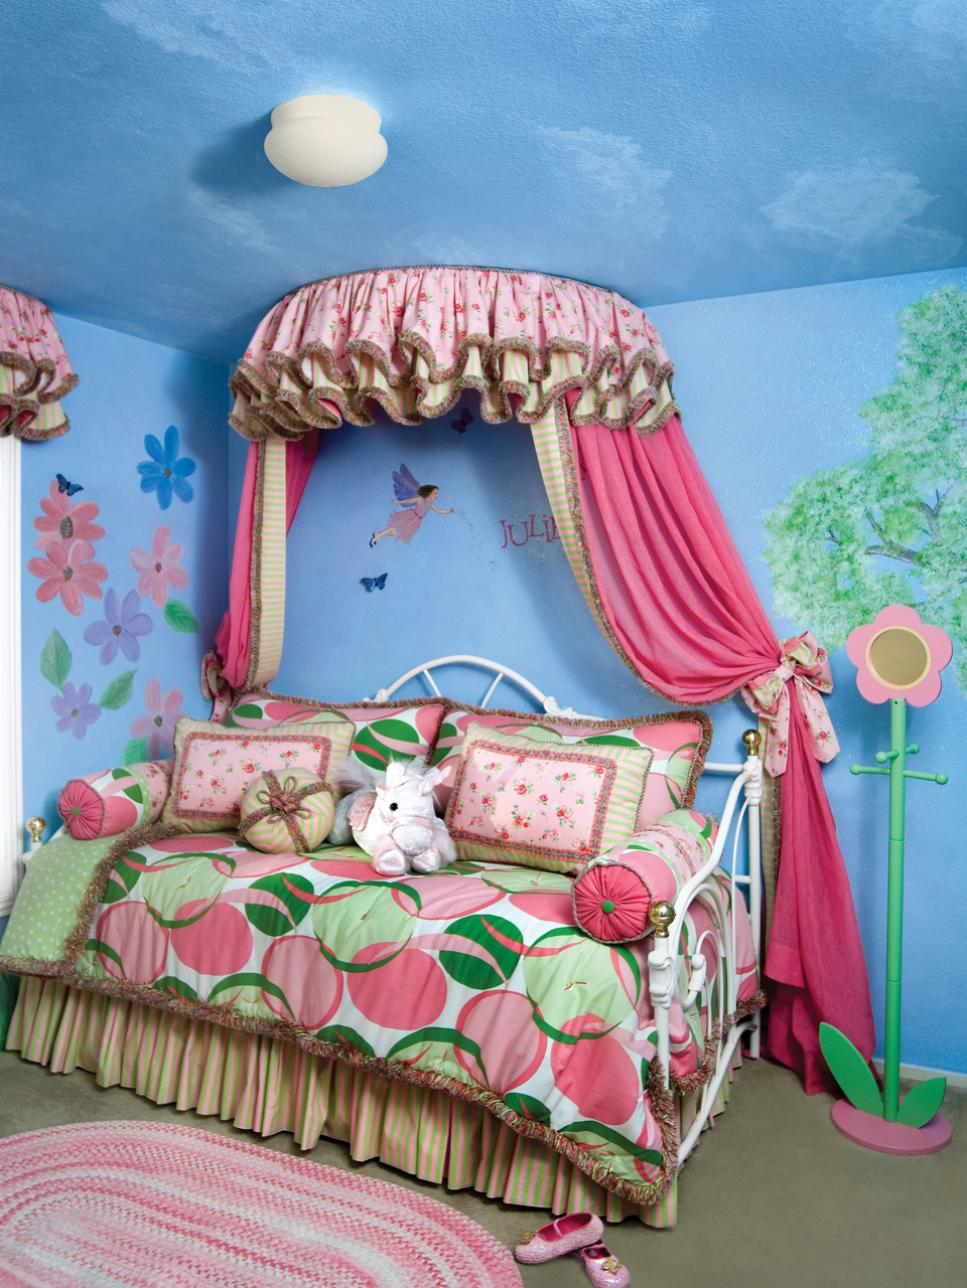 Fairy Themed Bedroom Decorations: 8 Ideas For Kids' Bedroom Themes